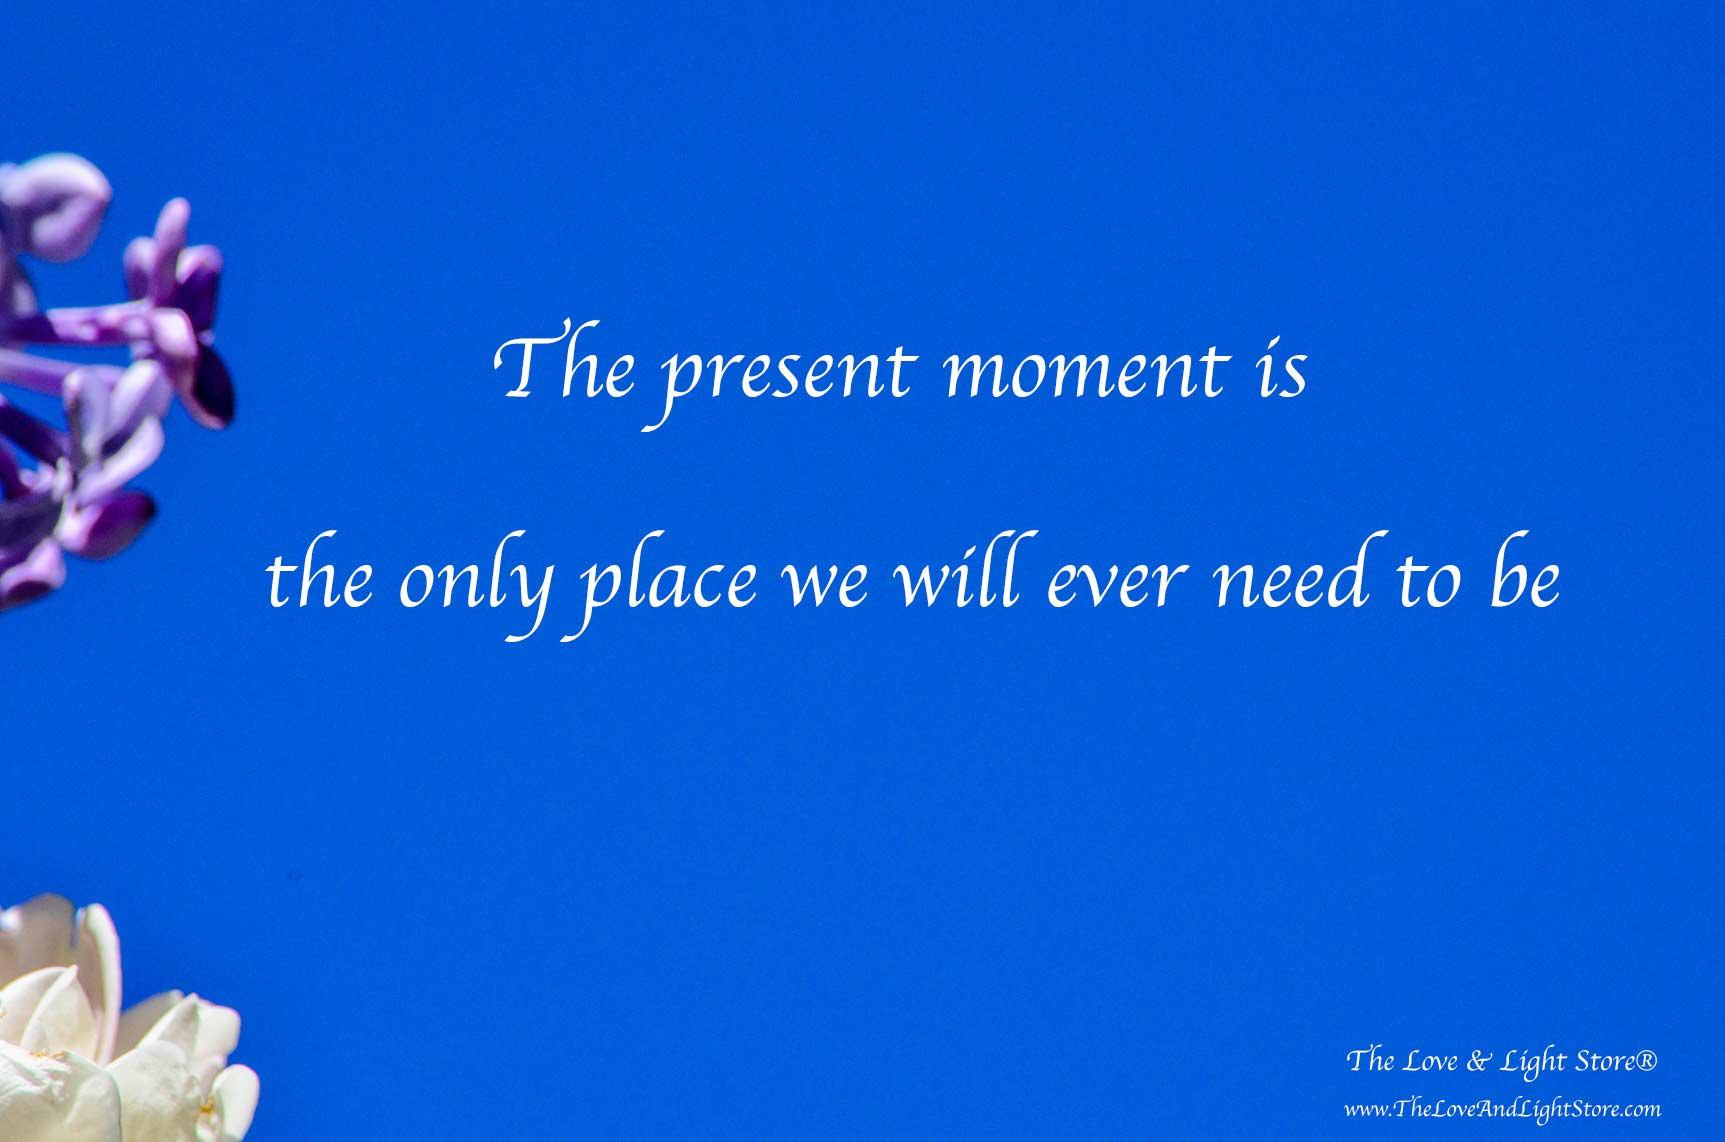 The present moment is the only place we will ever need to be